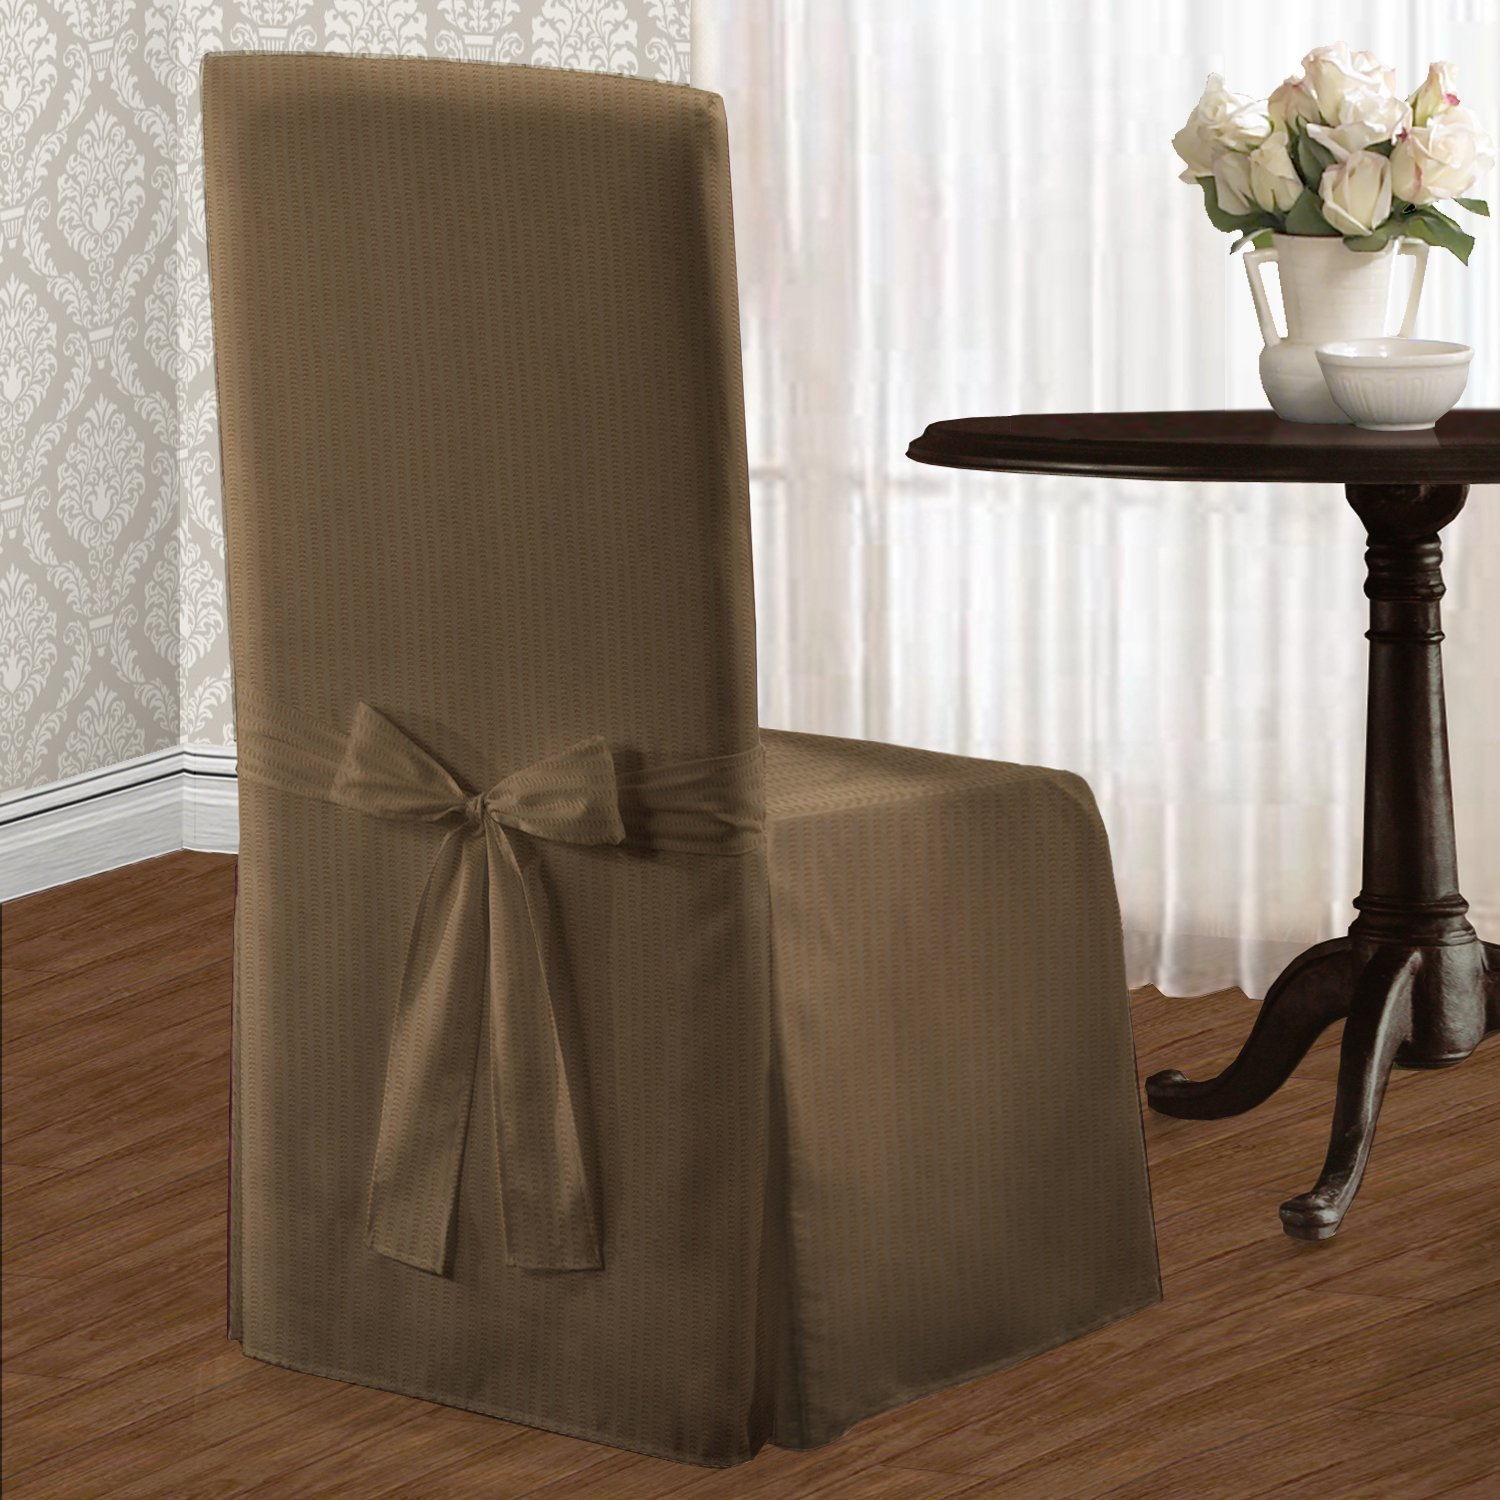 United Curtain Metro Dining Room Chair Cover, 19 by 18 by 42-Inch, Taupe